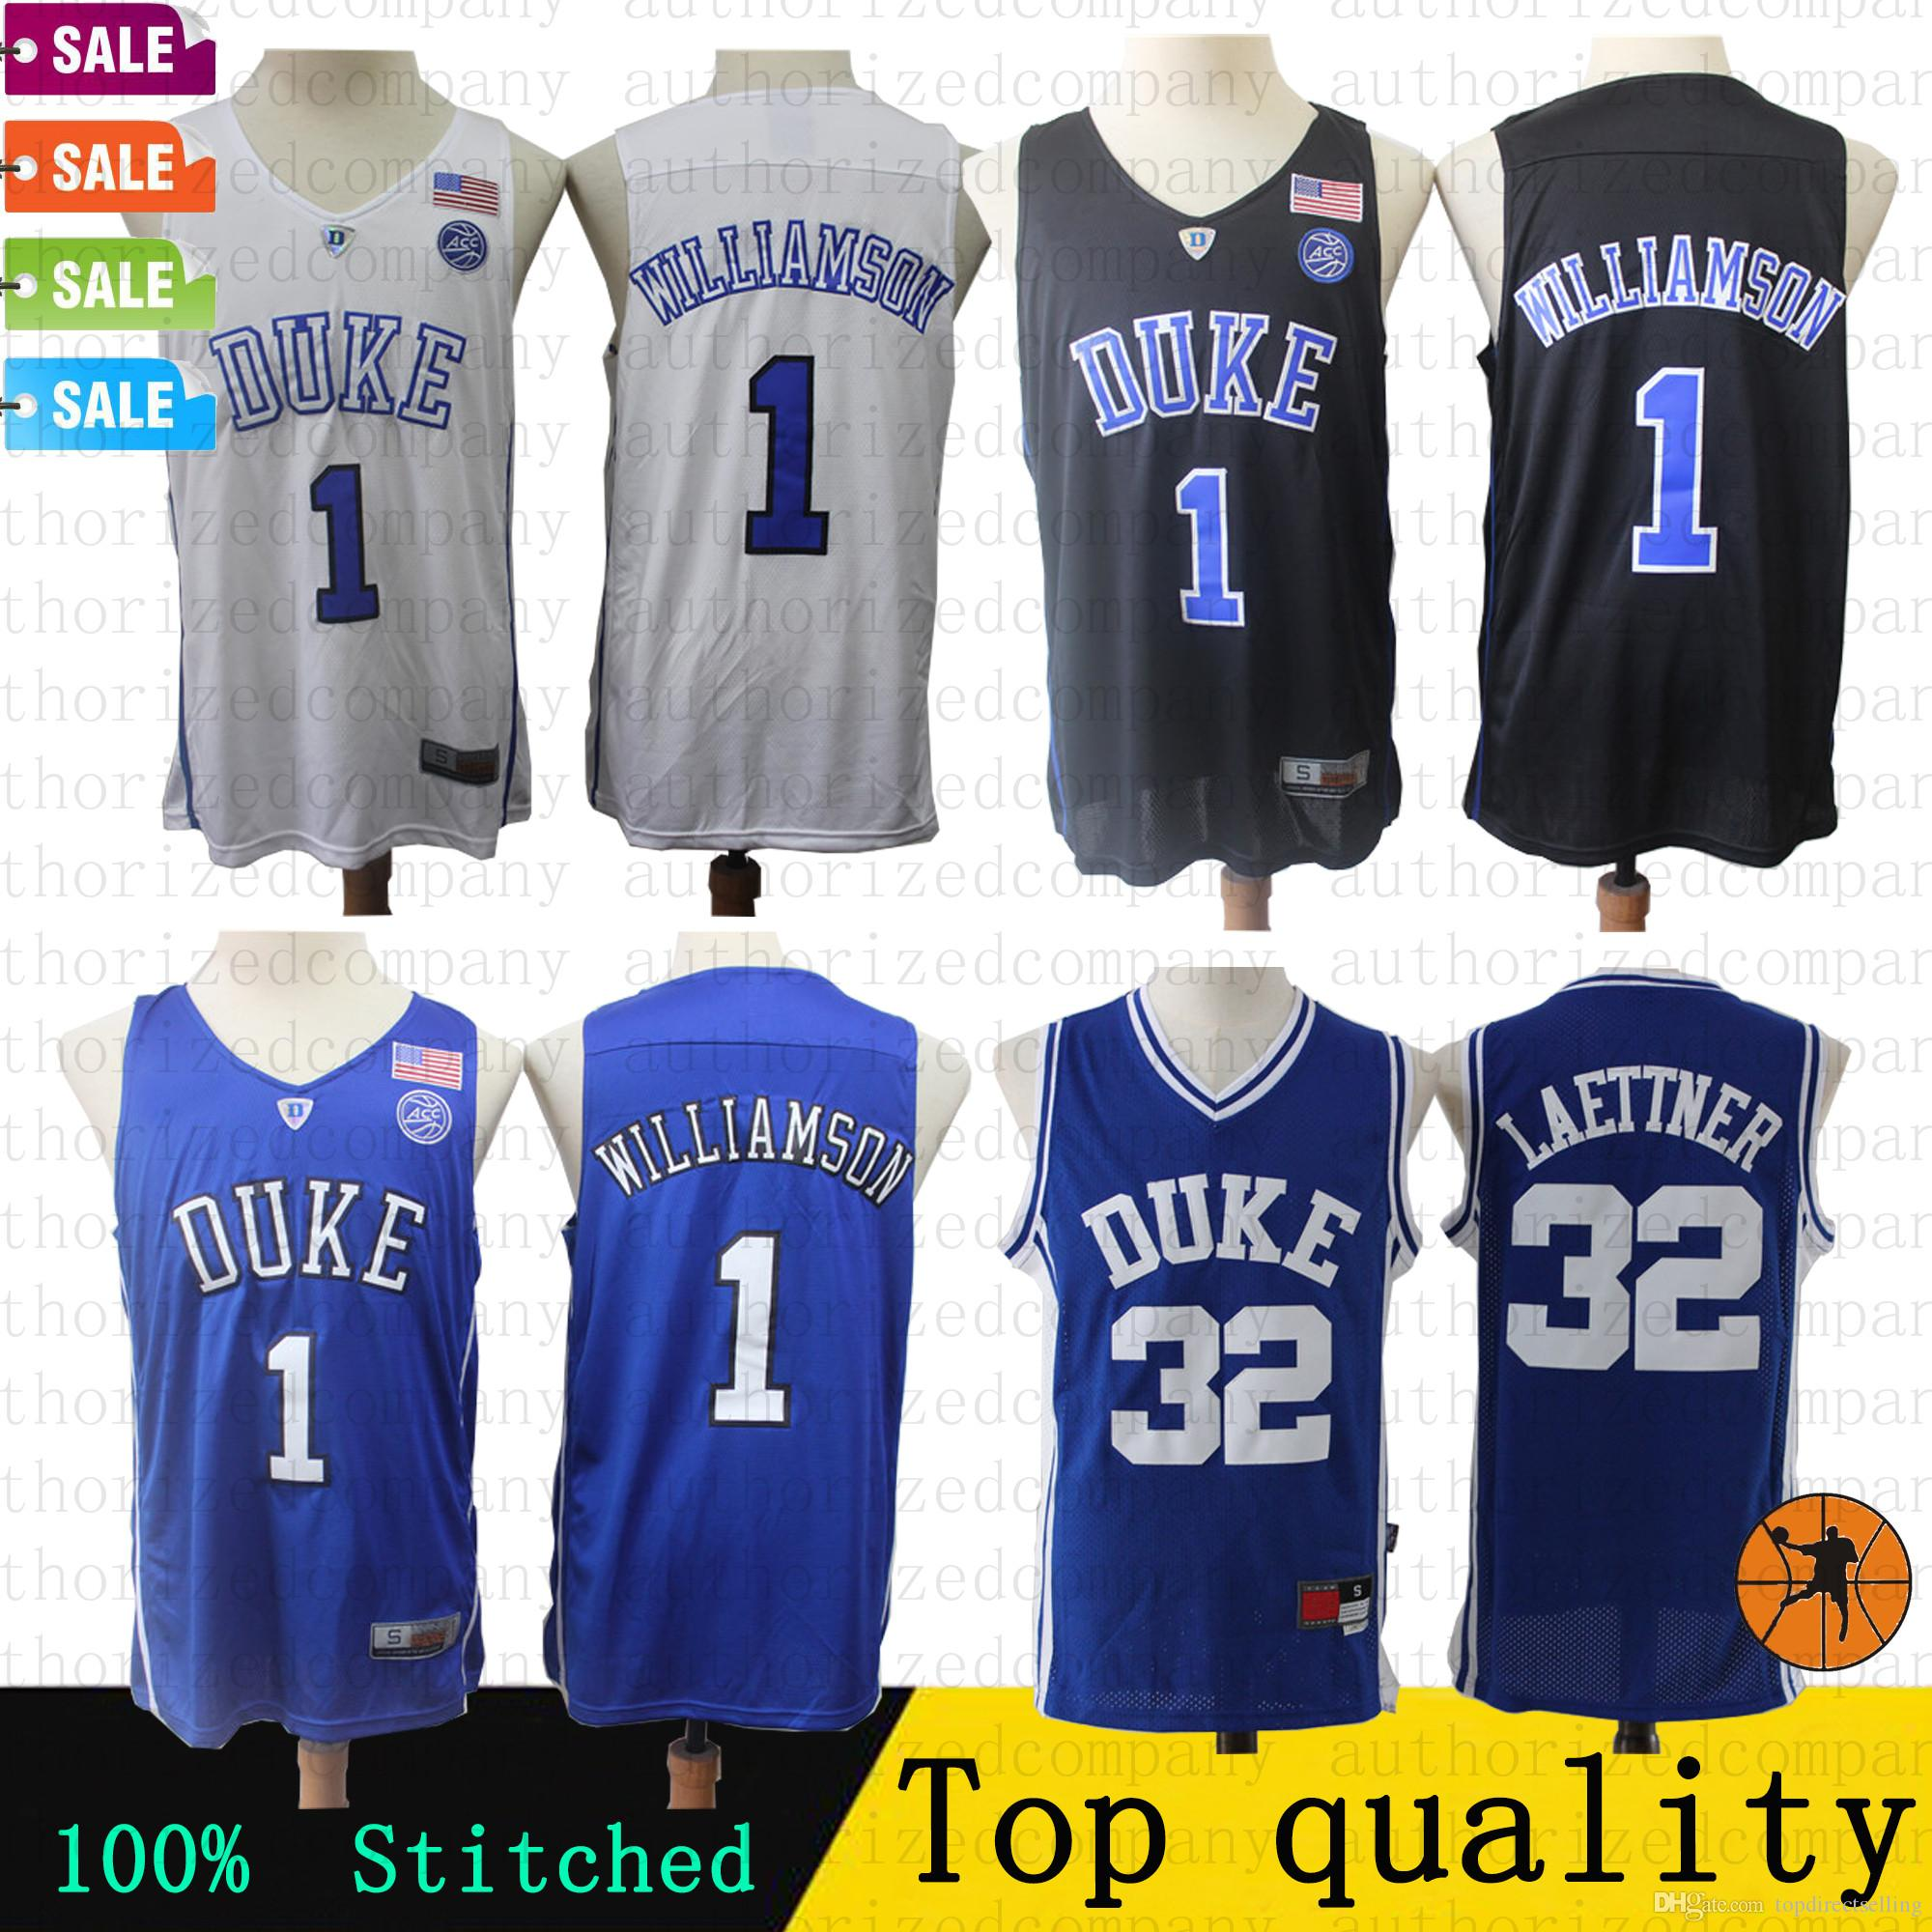 various colors d7a6c 504c7 2019 Newest NCAA Retro Basketball jersey 1 Zion Williamson 32 Christian  Donald Laettner Duke Blue Devils College jerseys 100% Stitched